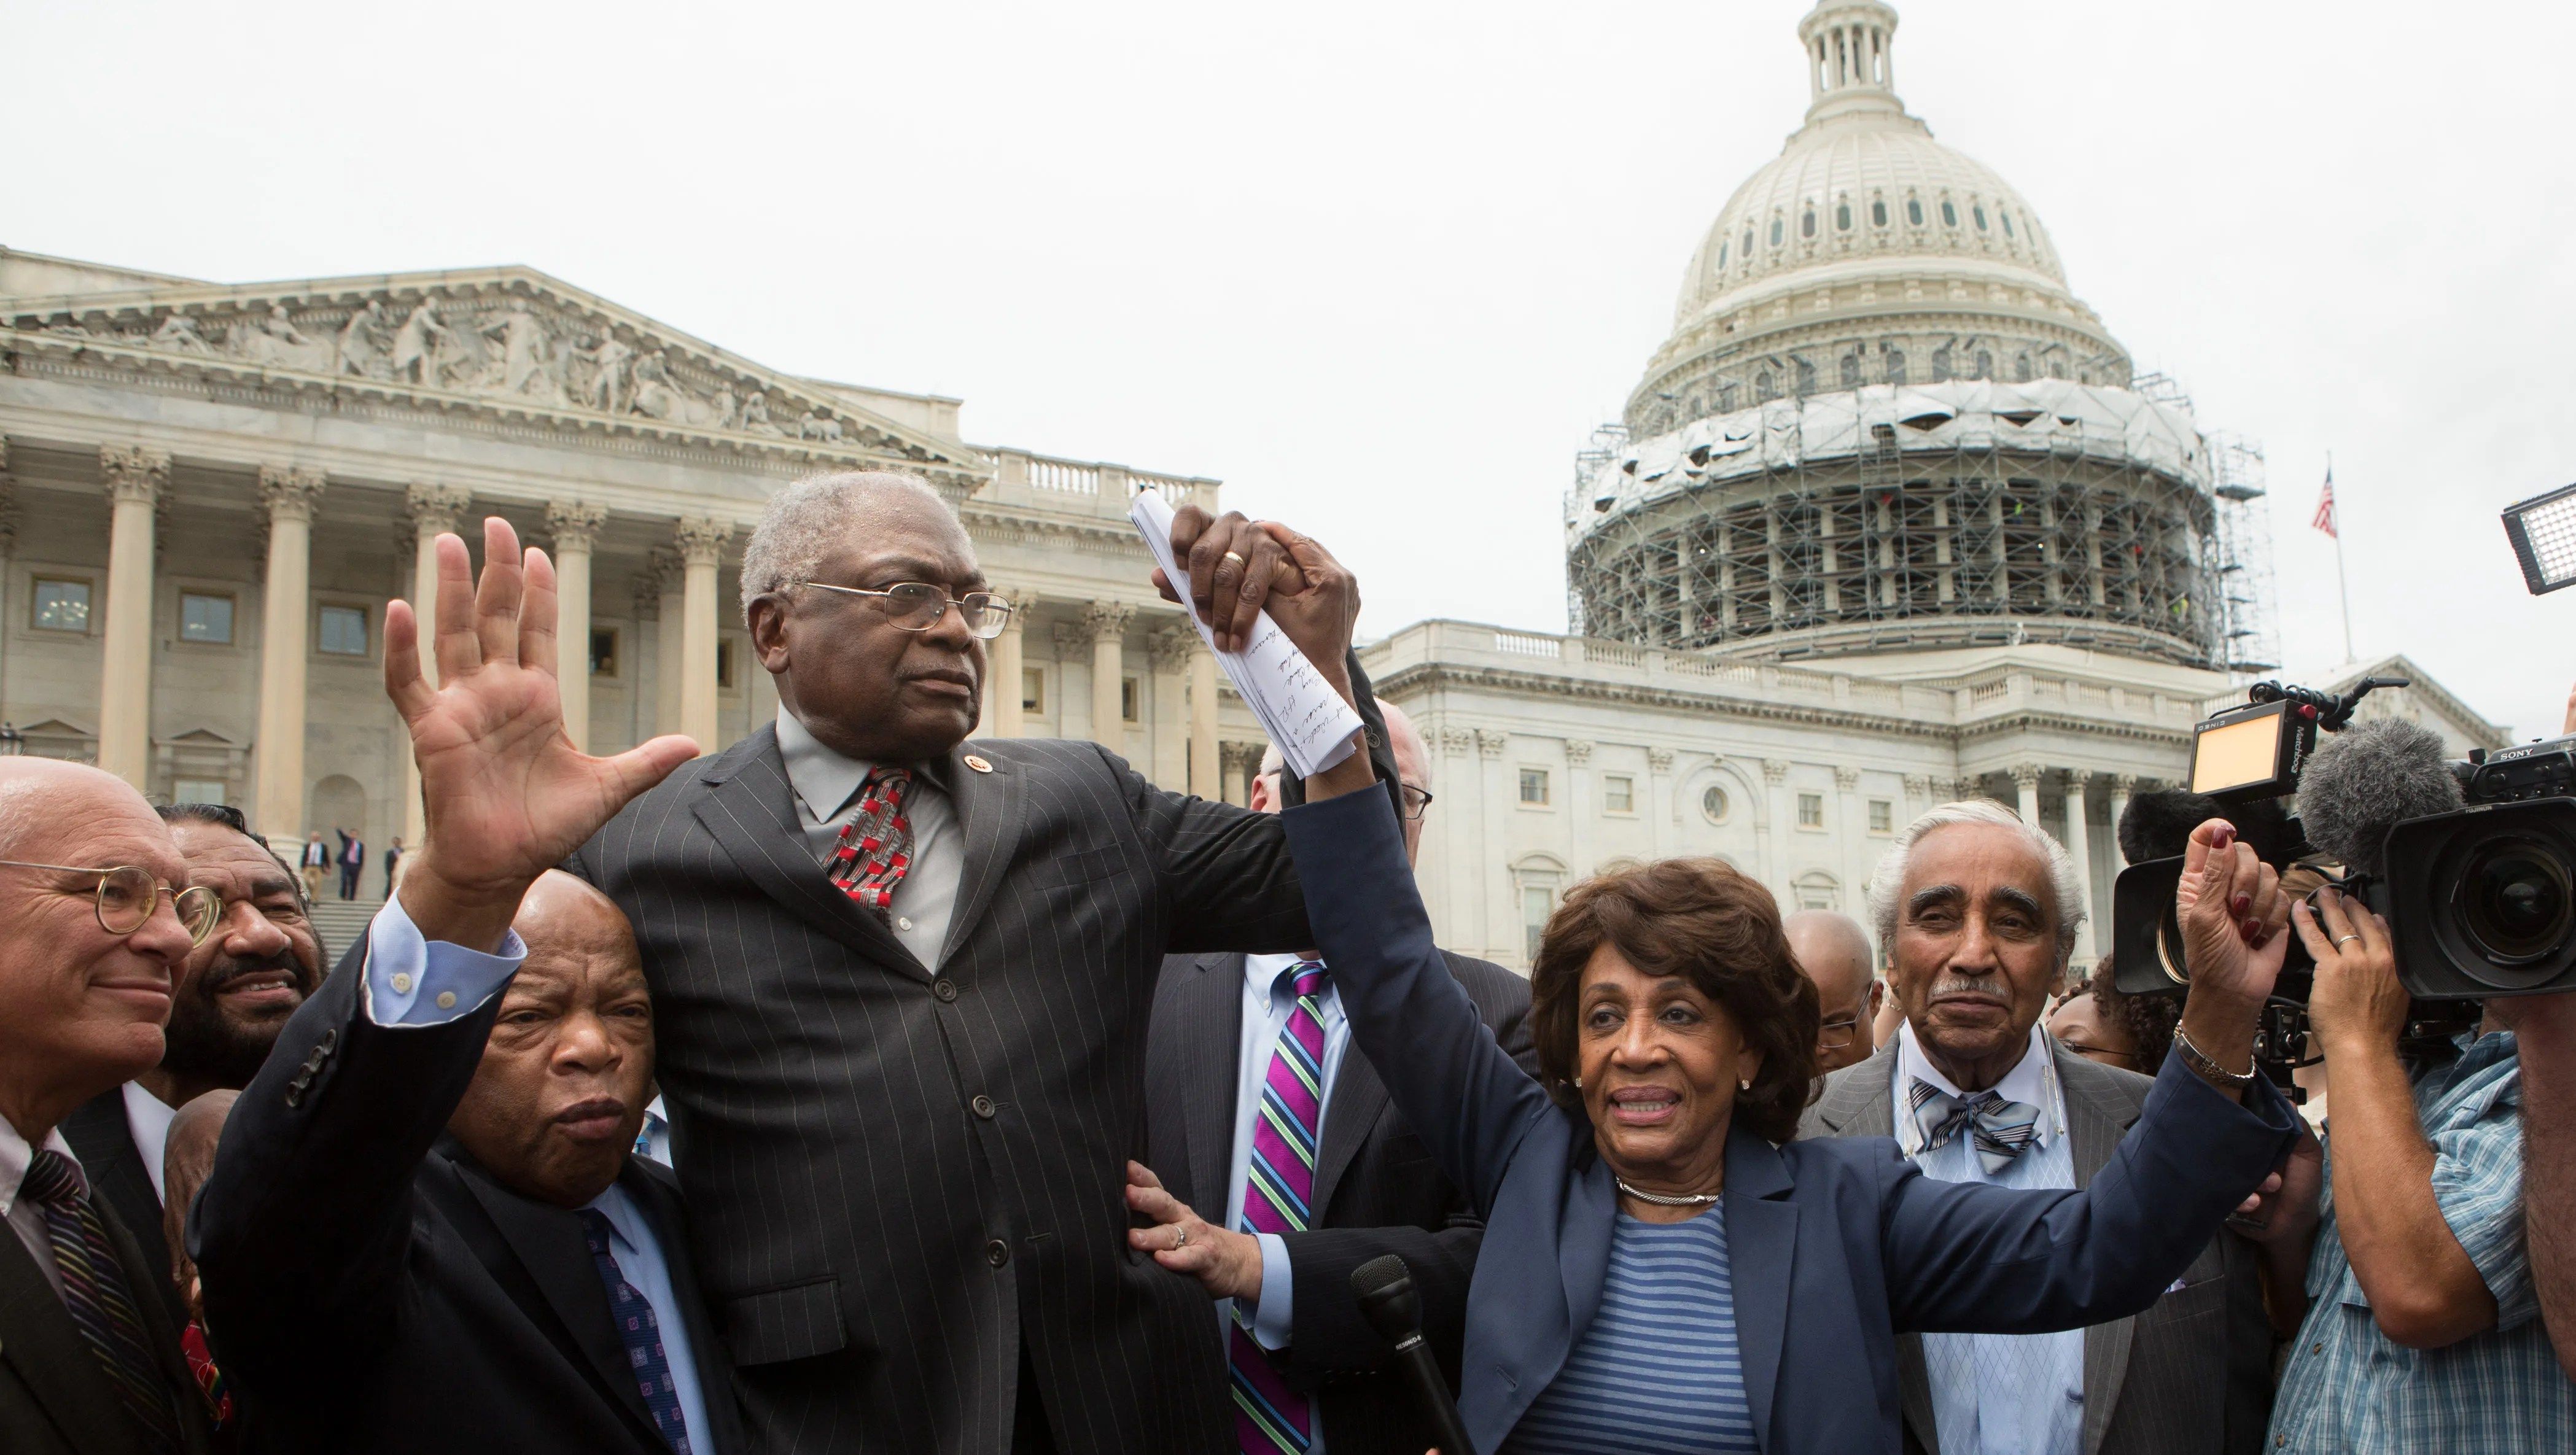 Reps. John Lewis, James Clyburn, Maxine Waters and Charles Rangel speak with supporters outside the Capitol on June 23, 2016.